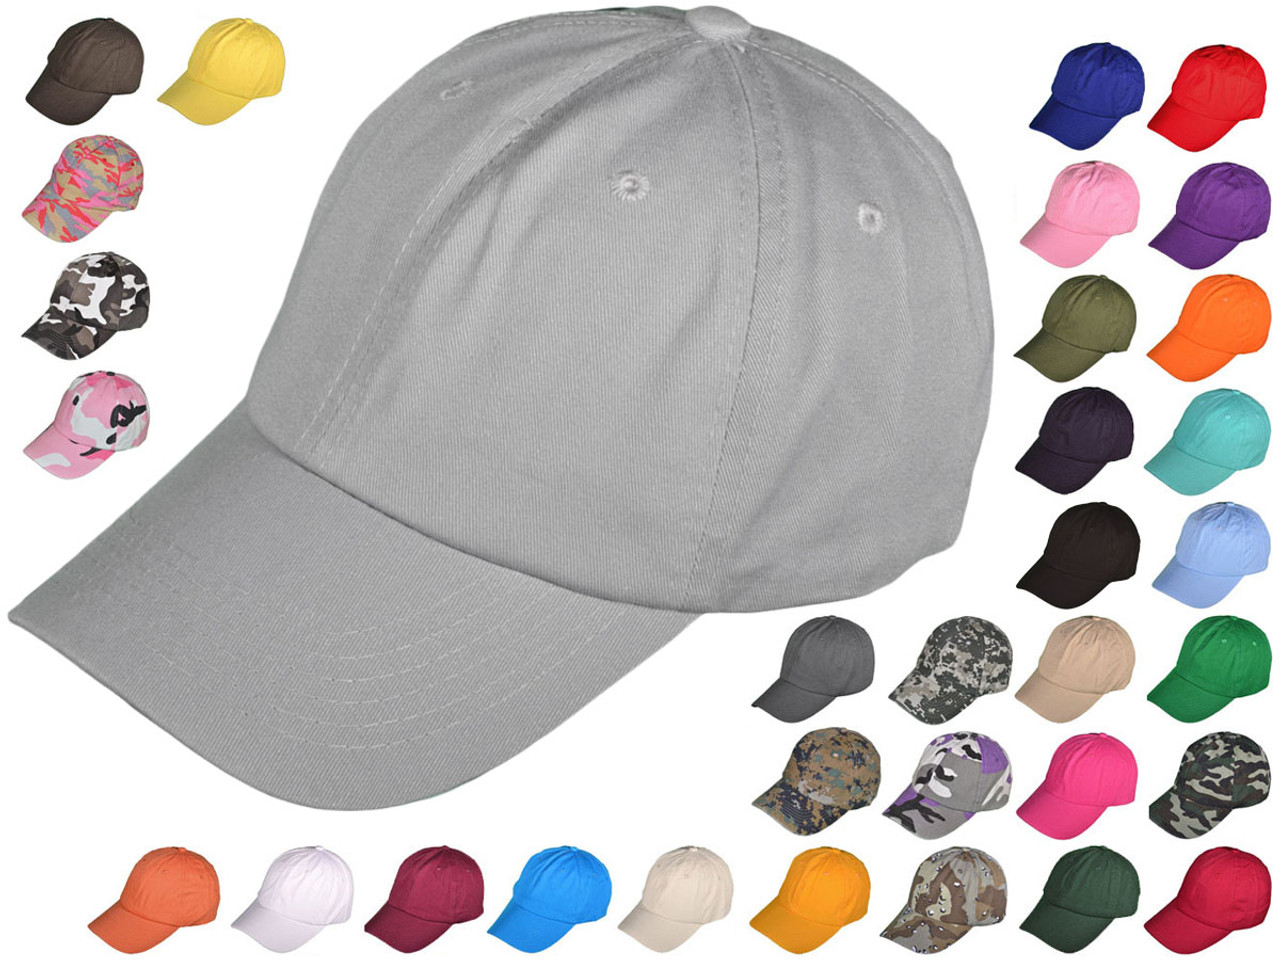 a82bc31ce Blank Dad Hats - BK Caps Unisex Cotton Polo Unstructured Low Profile  Baseball Caps With Buckle Back Closure (34 Colors) - 4921